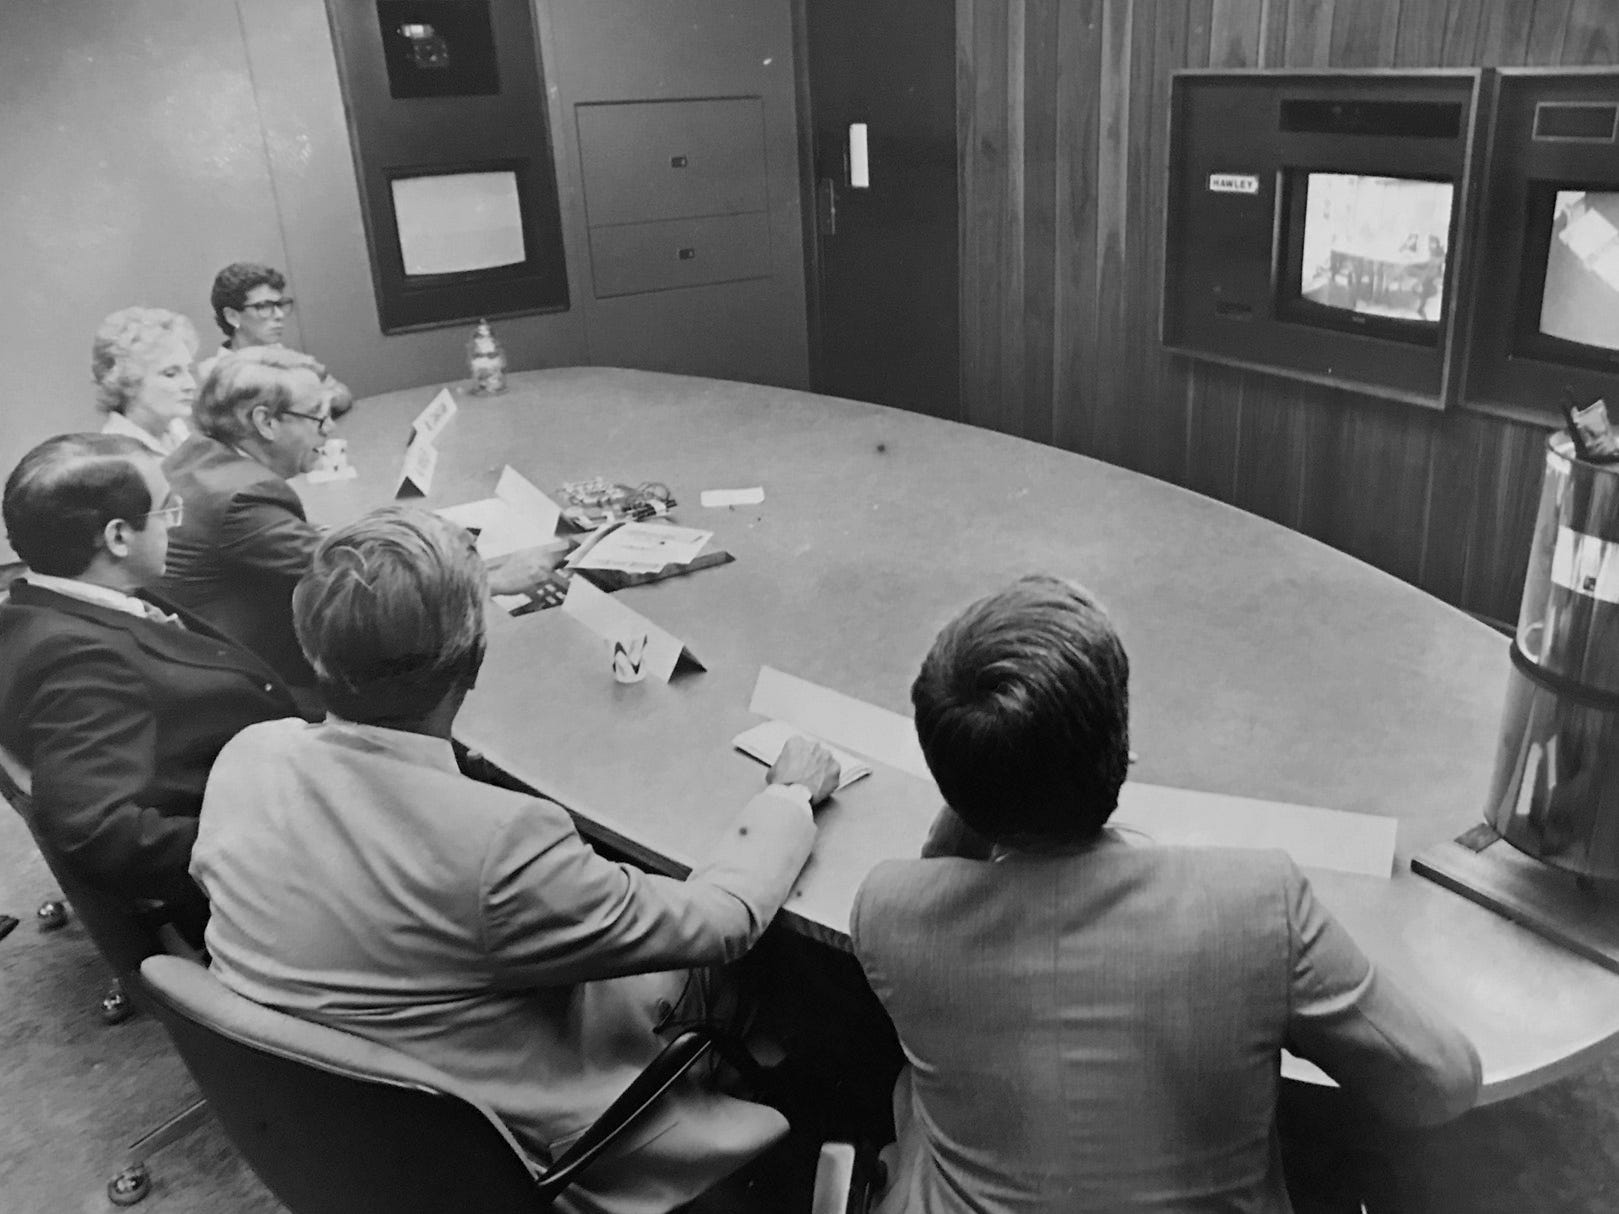 August 16, 1985 David G Thomas (wearing dark jacket and glasses), executive director of AT&T Transmission Systems Division leads a demonstration of video teleconferences via satellite yesterday at Bell Laboratories in Holmdel Township while he views and talks to other particip[ants who are in Hawley PA.